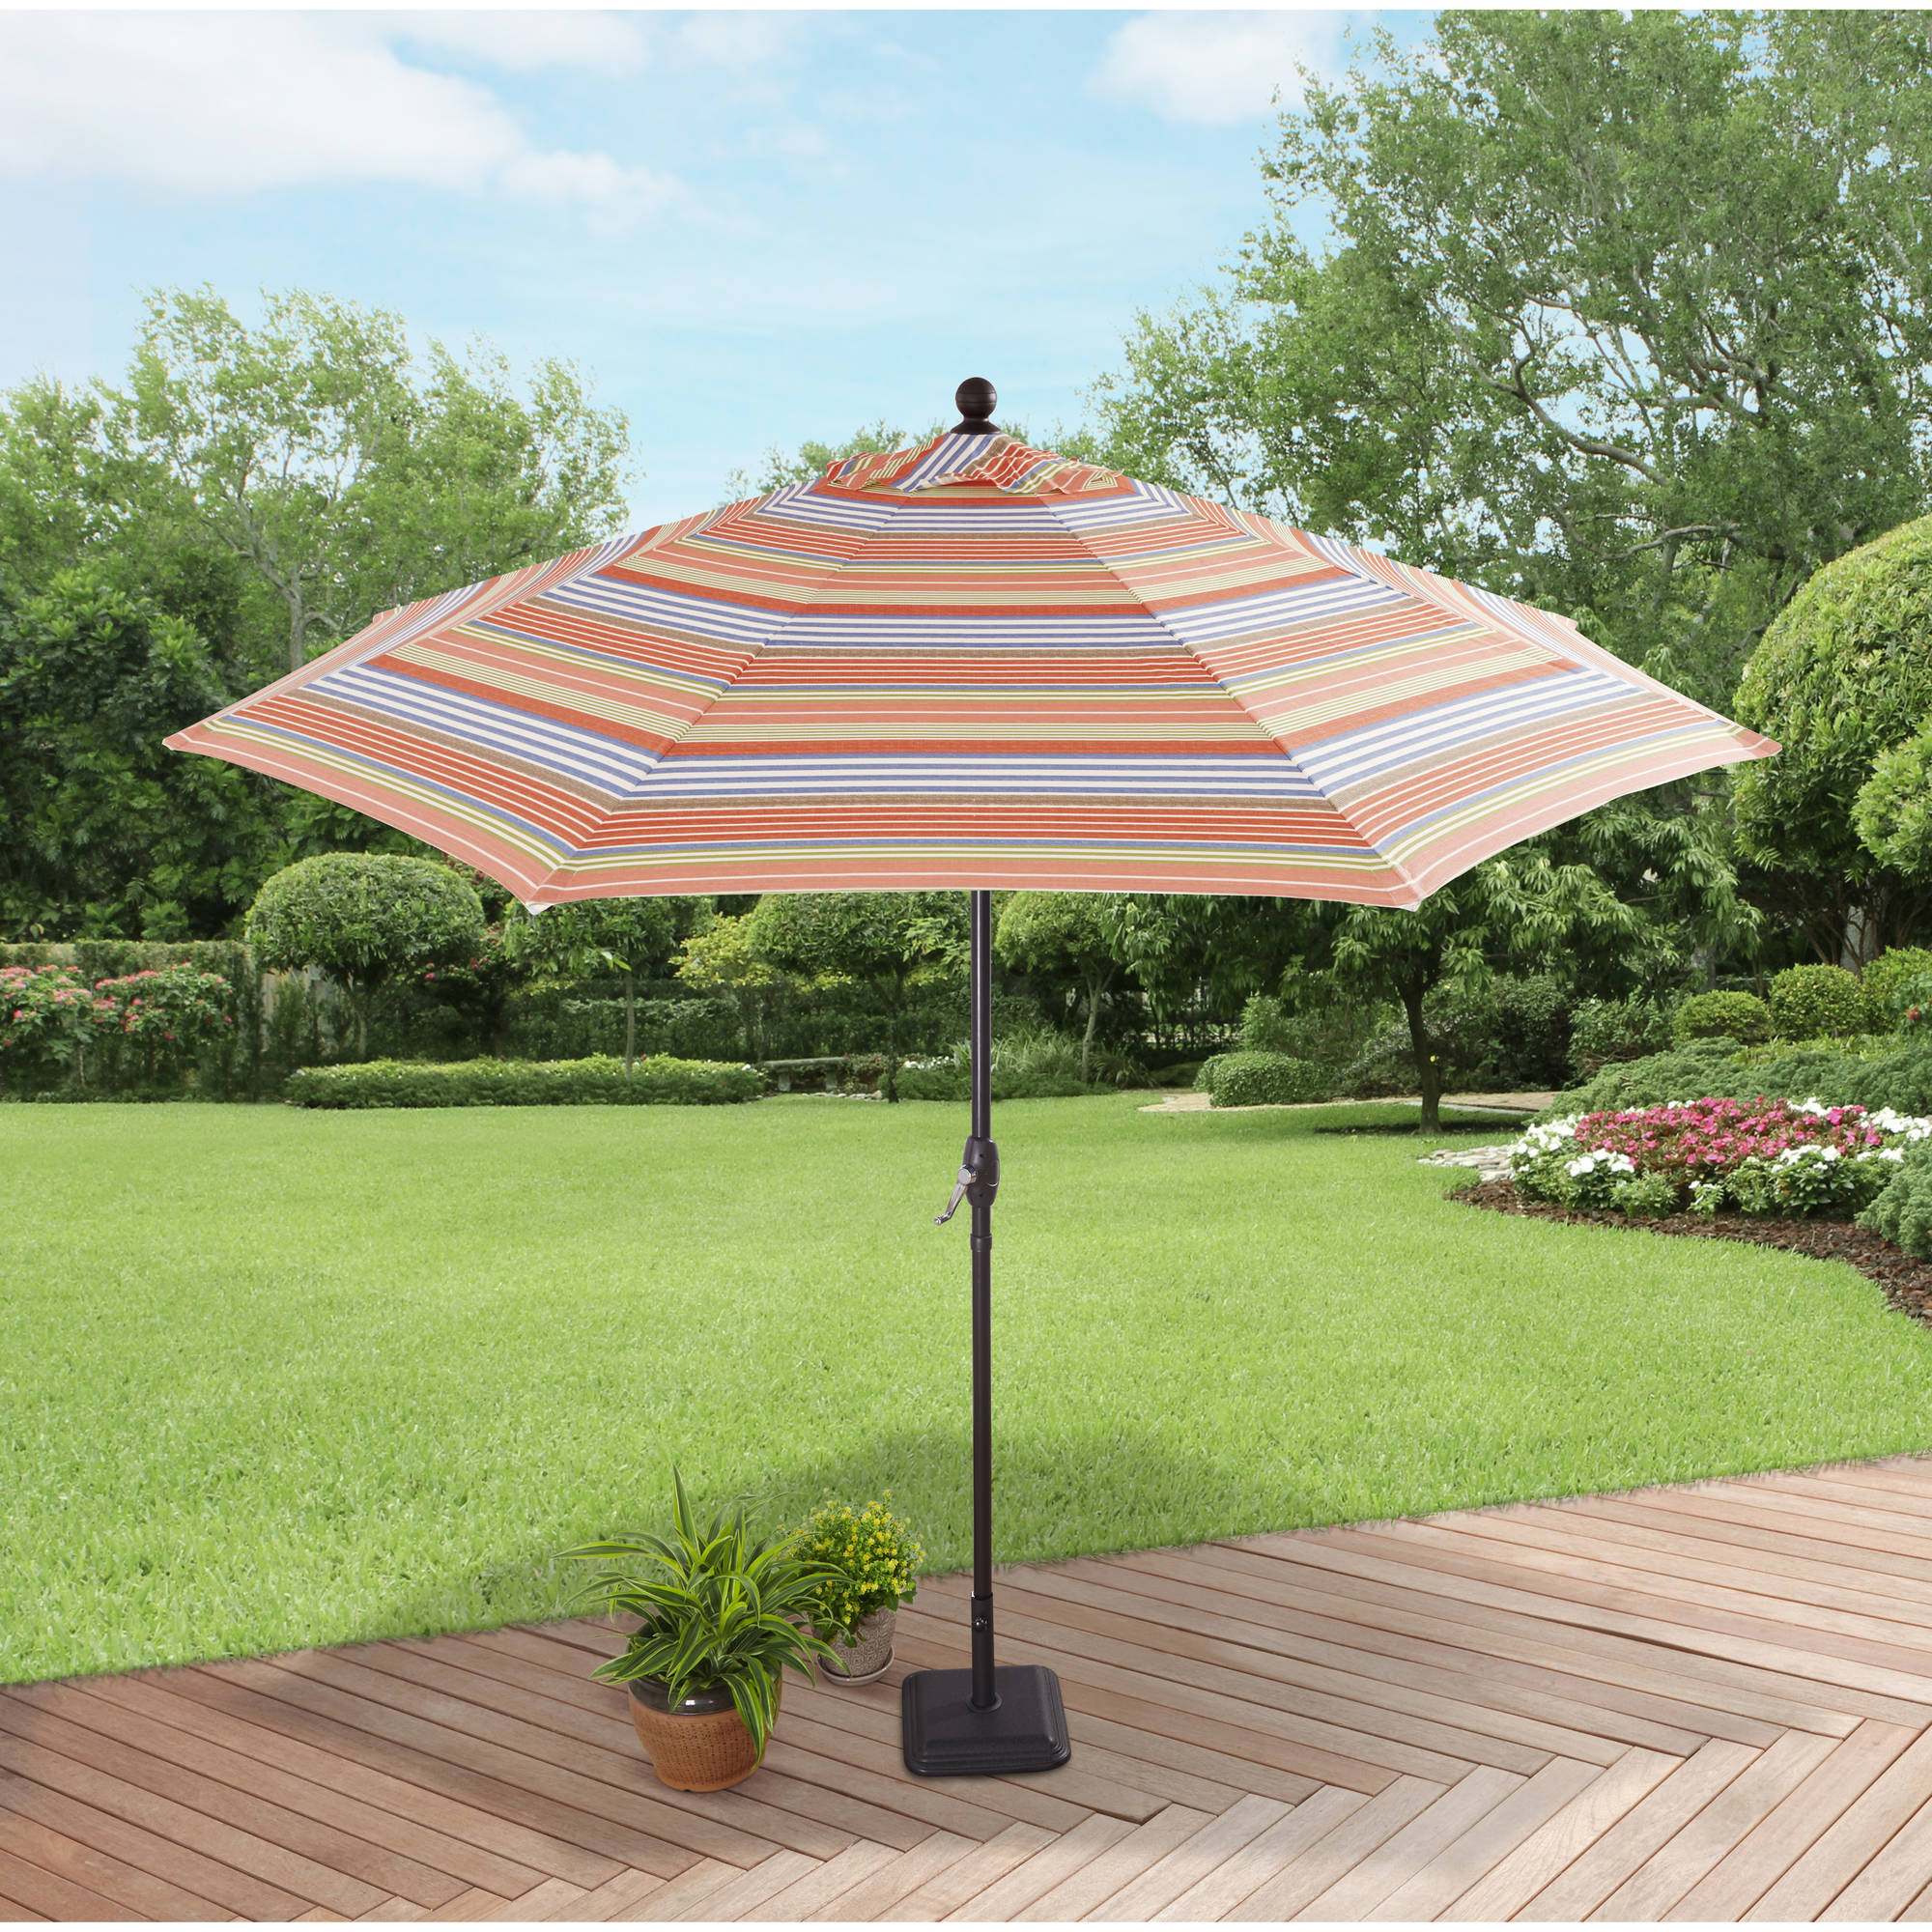 Better Homes and Gardens 9' Market Umbrella, Bright Stripe by